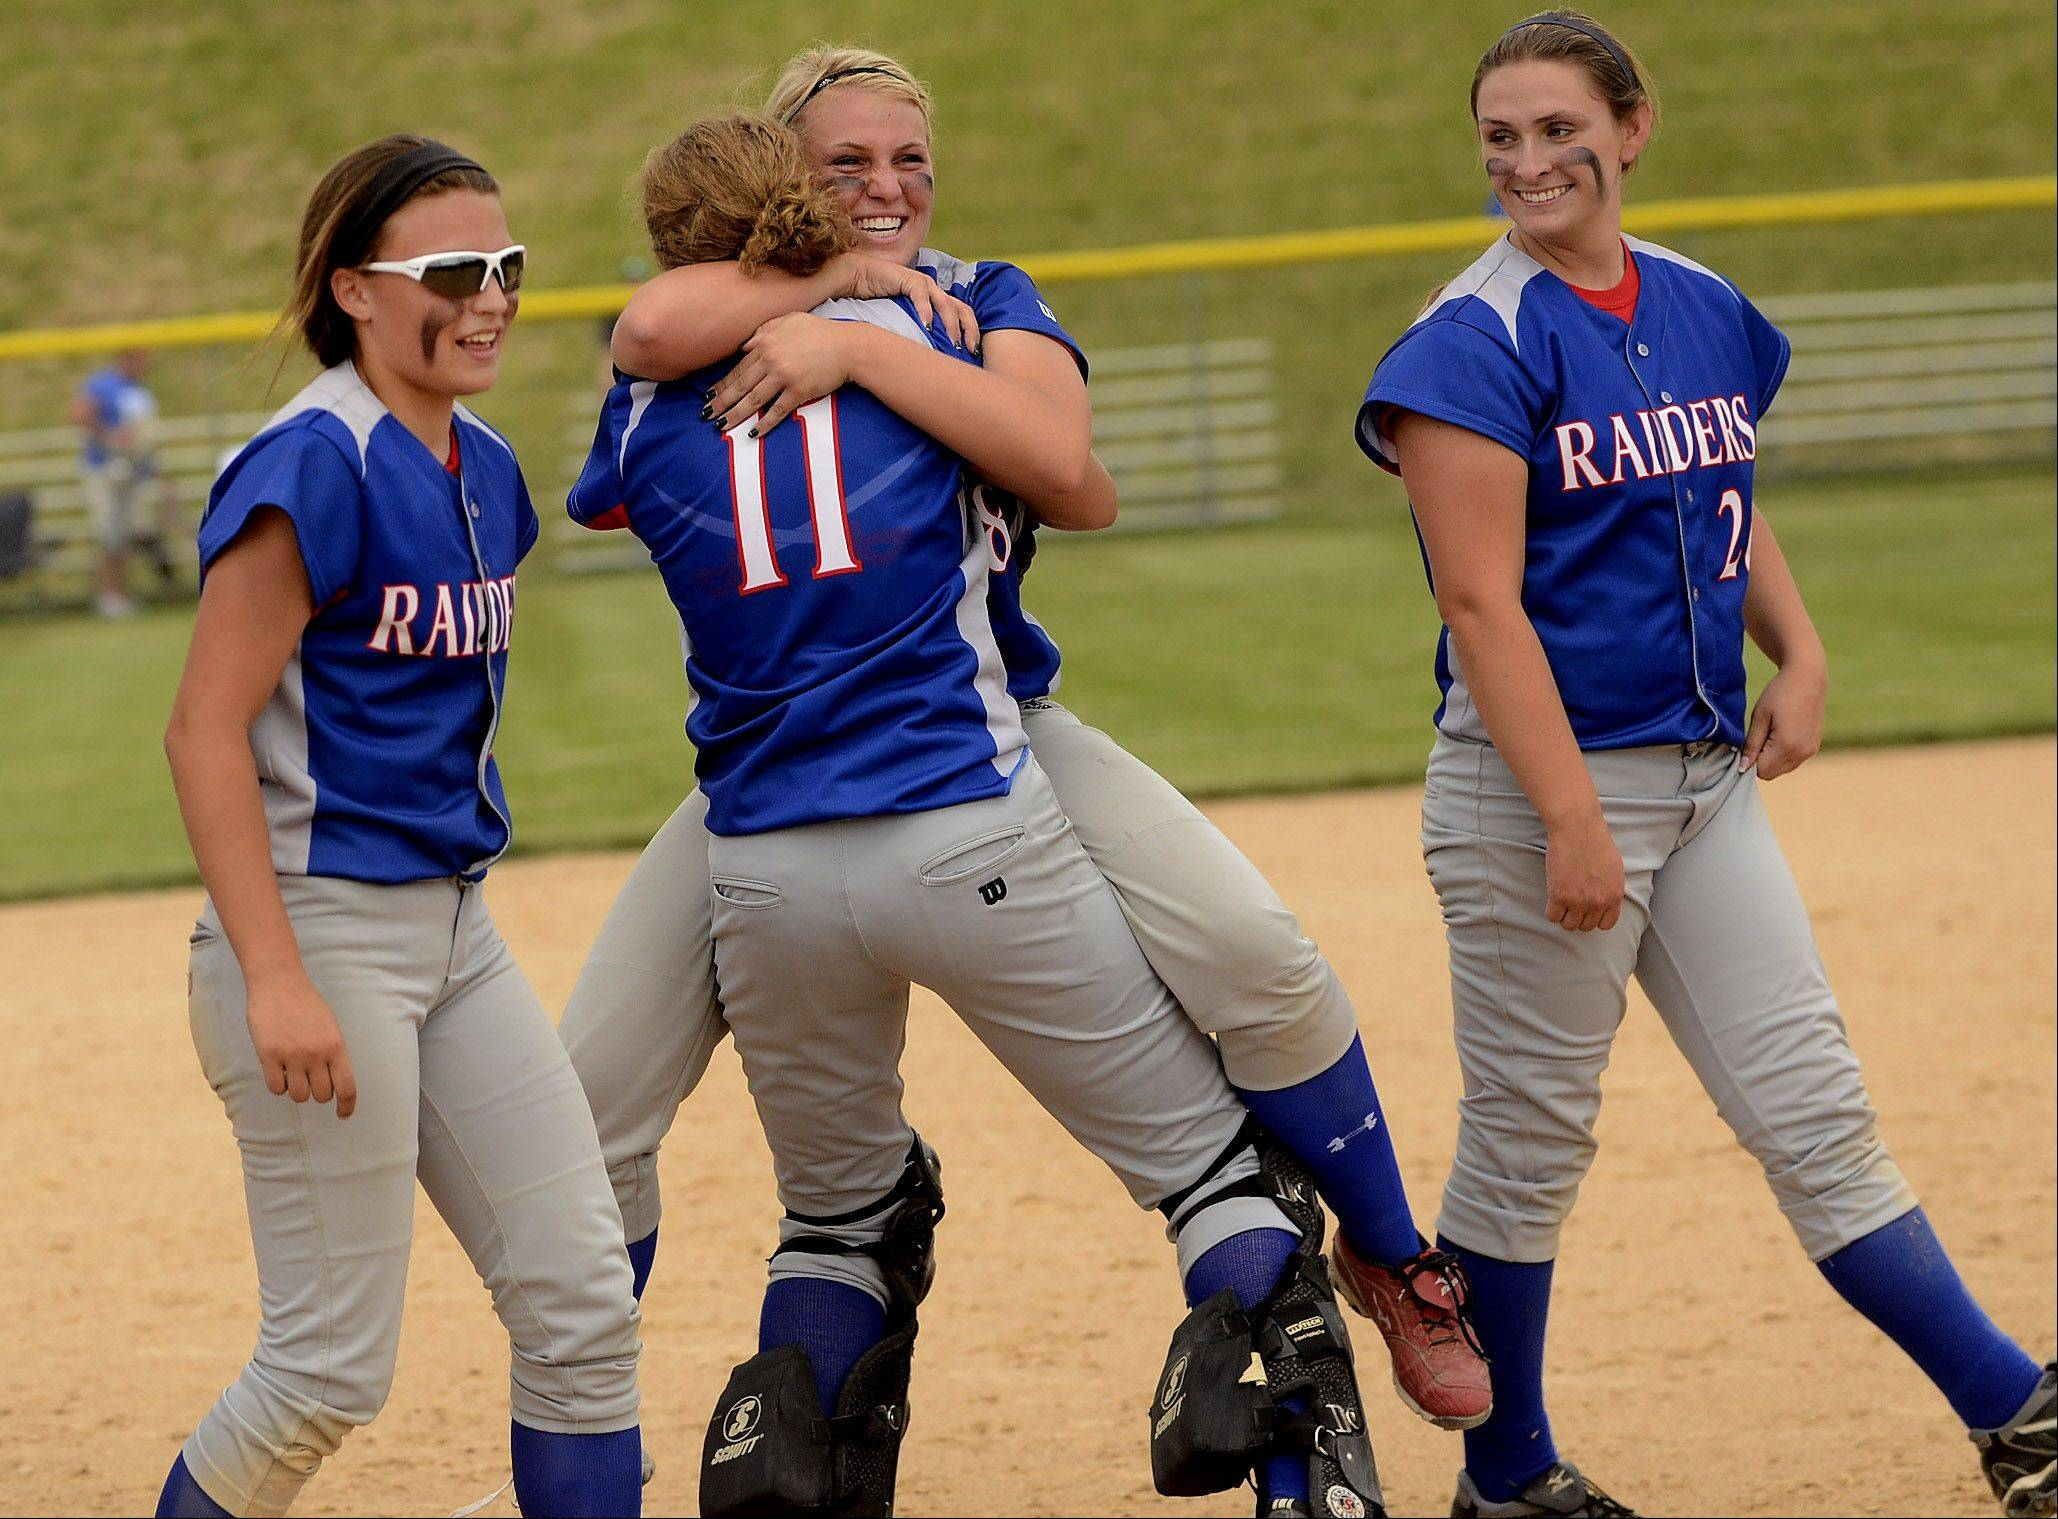 Catcher Jane Trzaska, left, and pitcher Stephanie Chitkowski embrace after the final out of the game, as Glenbard South repeats as Class 3A state champions after defeating Alton Marquette Saturday.